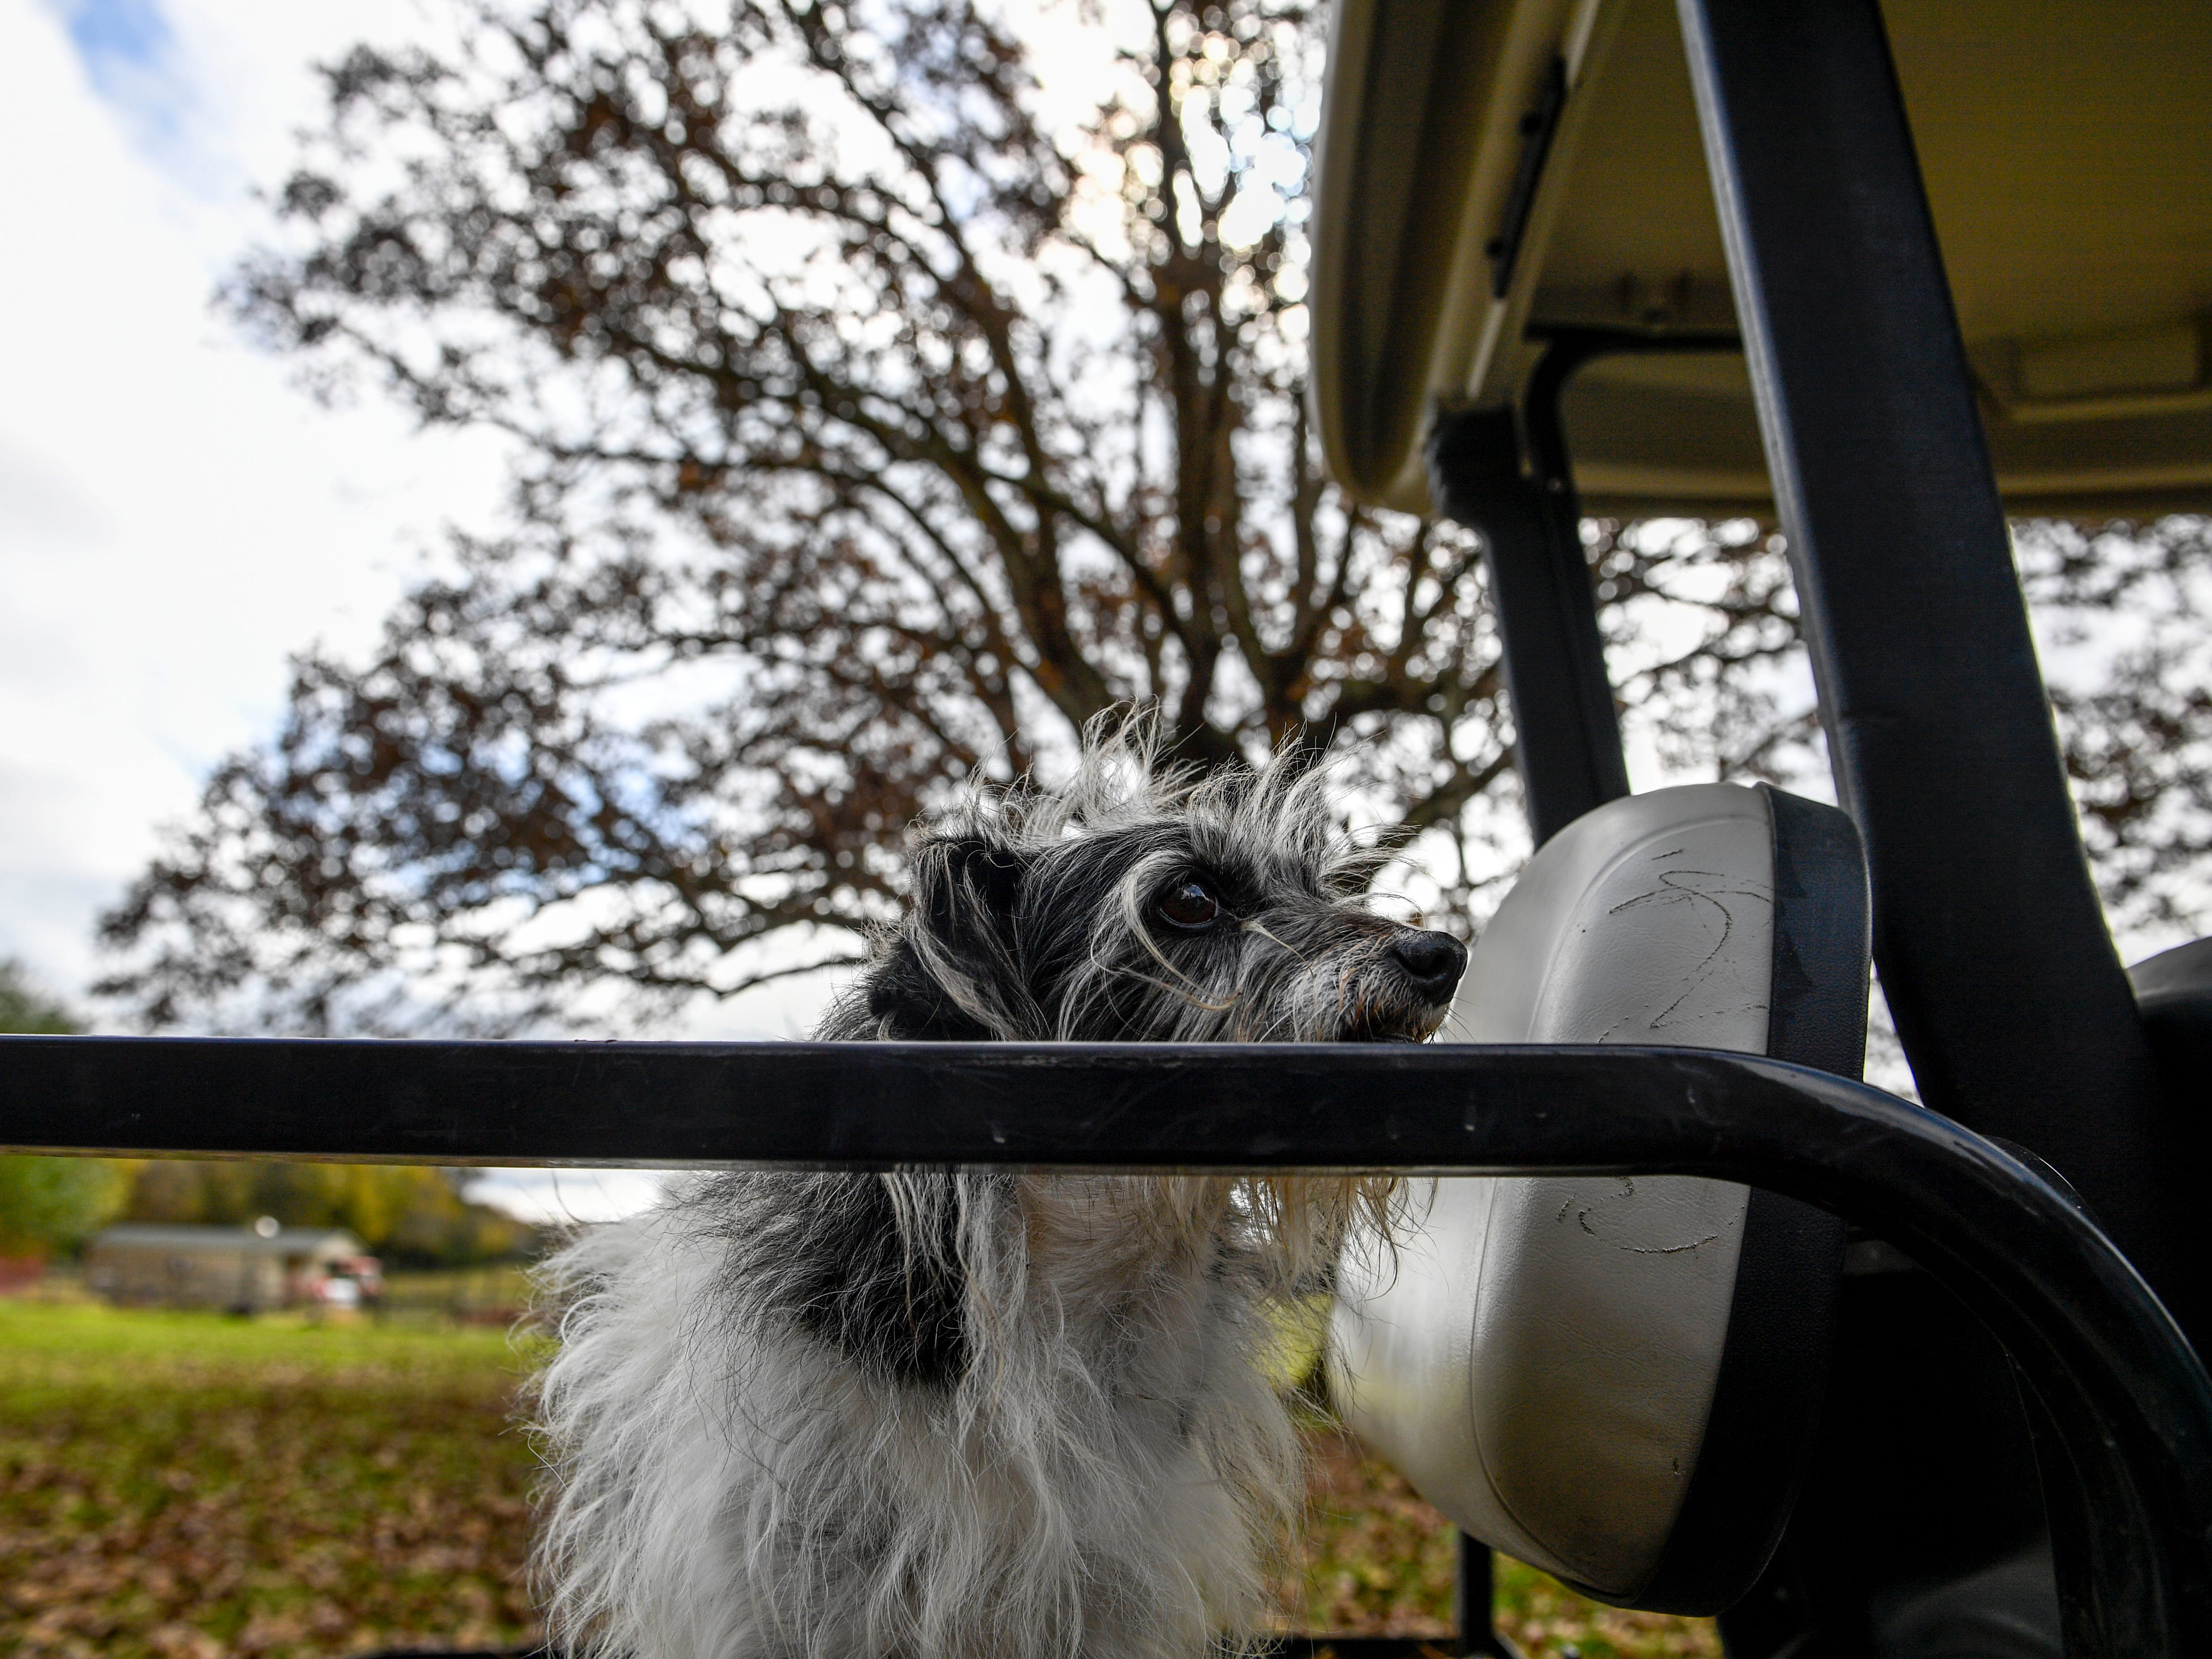 Bob, a stray that arrived at the Pitoni's farm one day and stayed for good, perches on top of a golf cart at Stillwaters Farm in Henderson, Tenn., on Monday, Nov. 5, 2018.